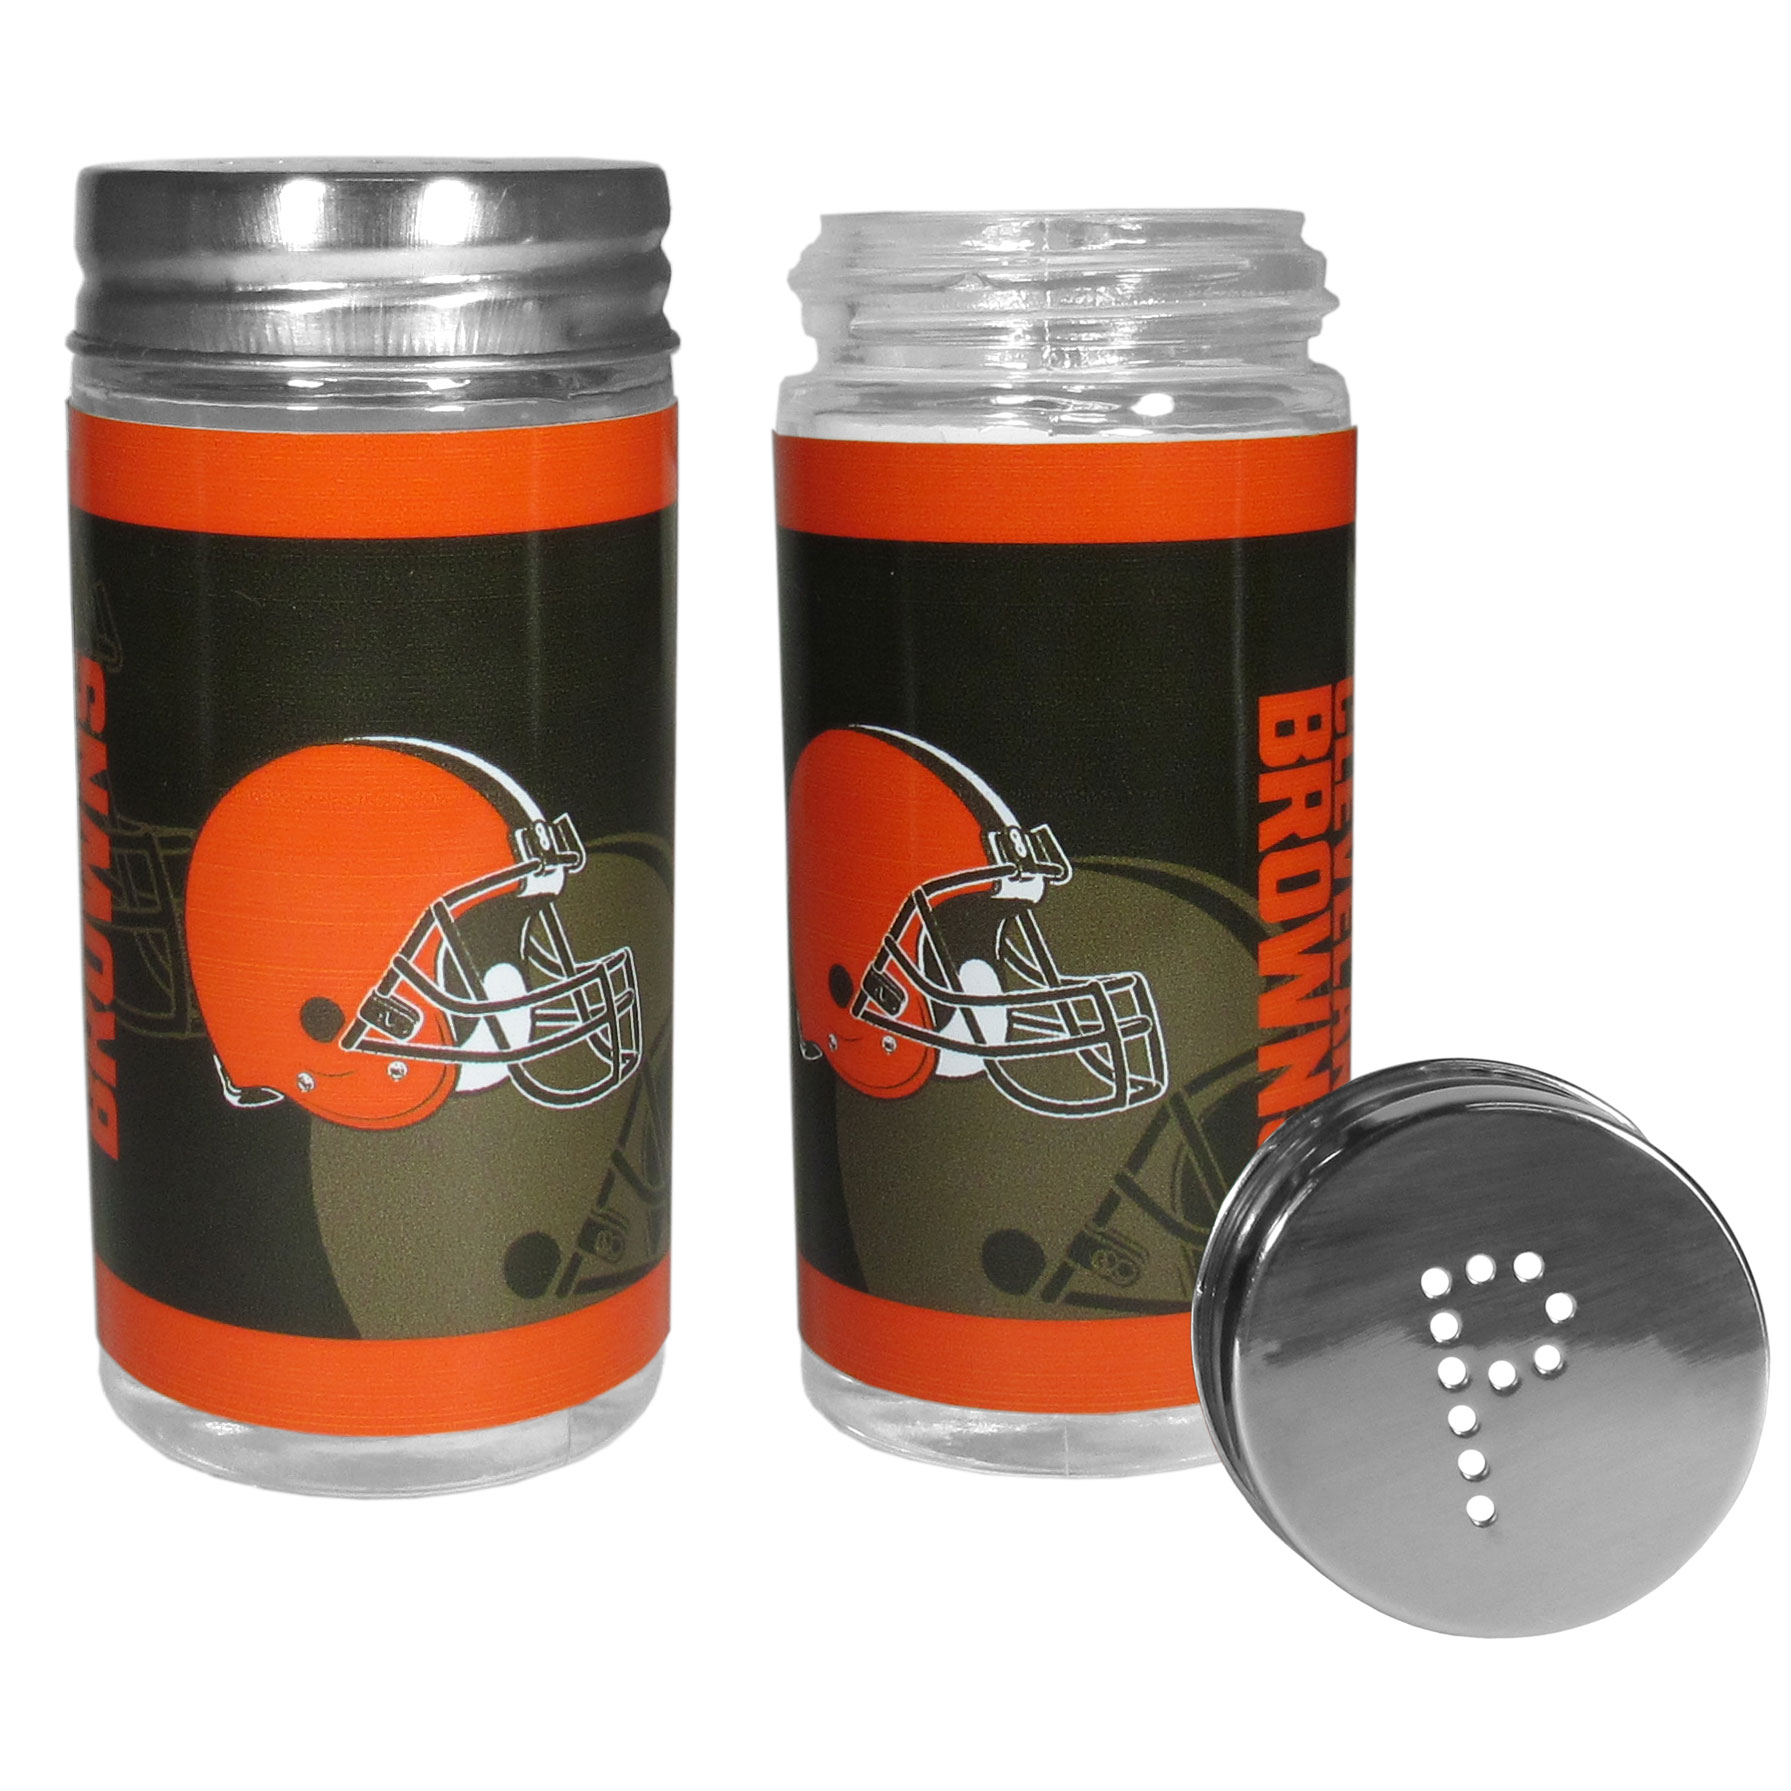 Cleveland Browns Tailgater Salt & Pepper Shakers - No tailgate party is complete without your Cleveland Browns salt & pepper shakers featuring bright team graphics. The glass shakers are 3.75 inches tall and the screw top lids have holes that spell out P and S. These team shakers are a great grill accessory whether you are barbecuing on the patio, picnicing or having a game day party.